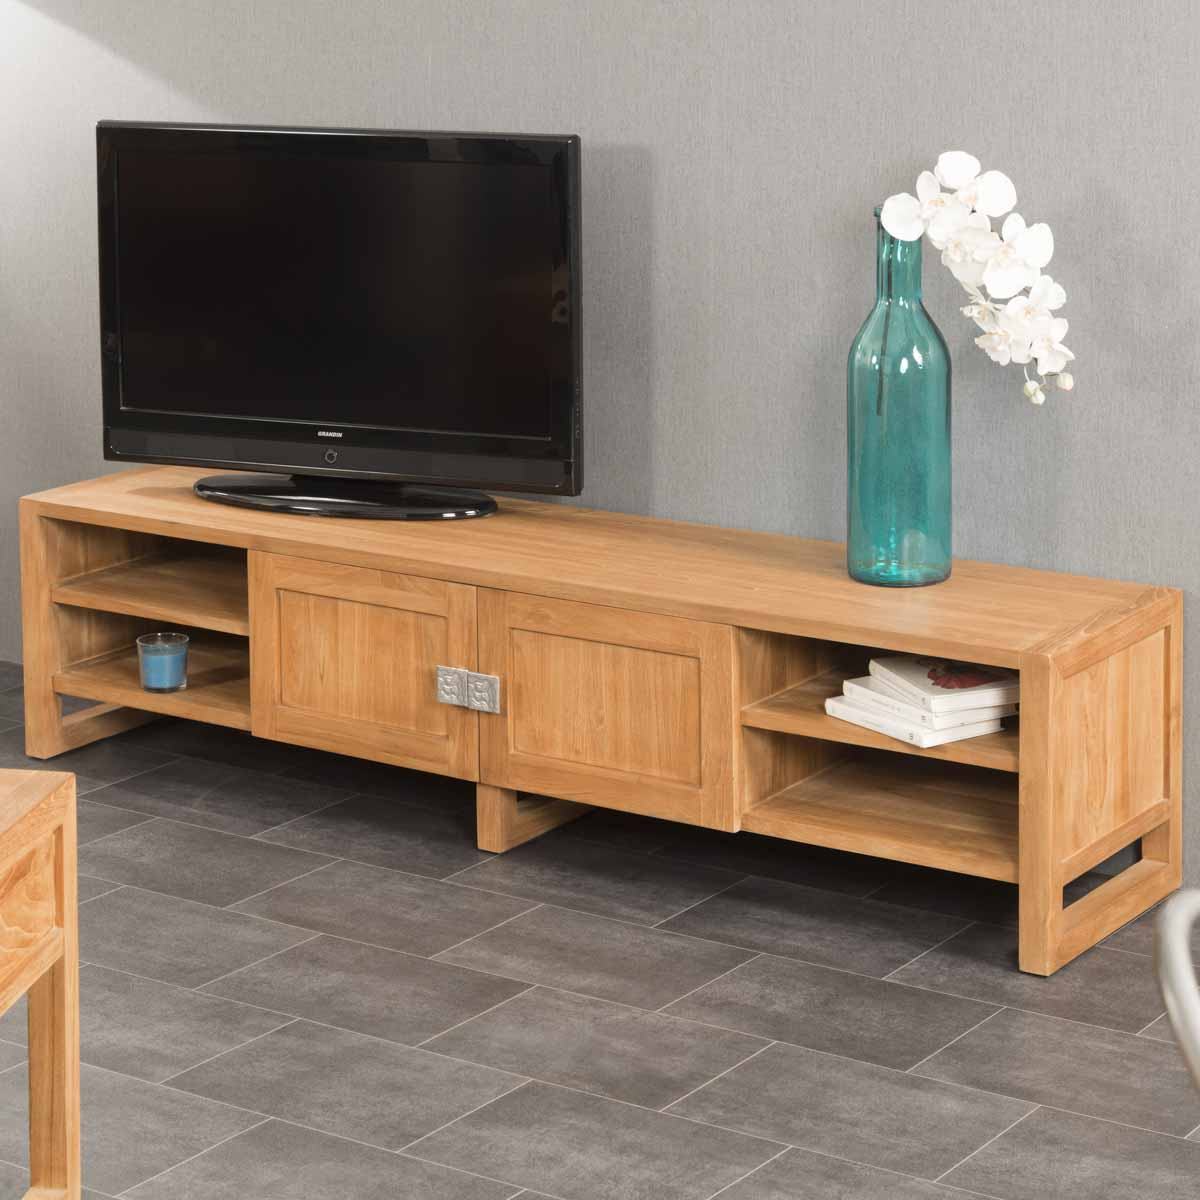 Meuble Tv Teck Meuble Tv Bois Naturel Rectangle Th A 170 X 40 Cm # Meuble Tv En Teck